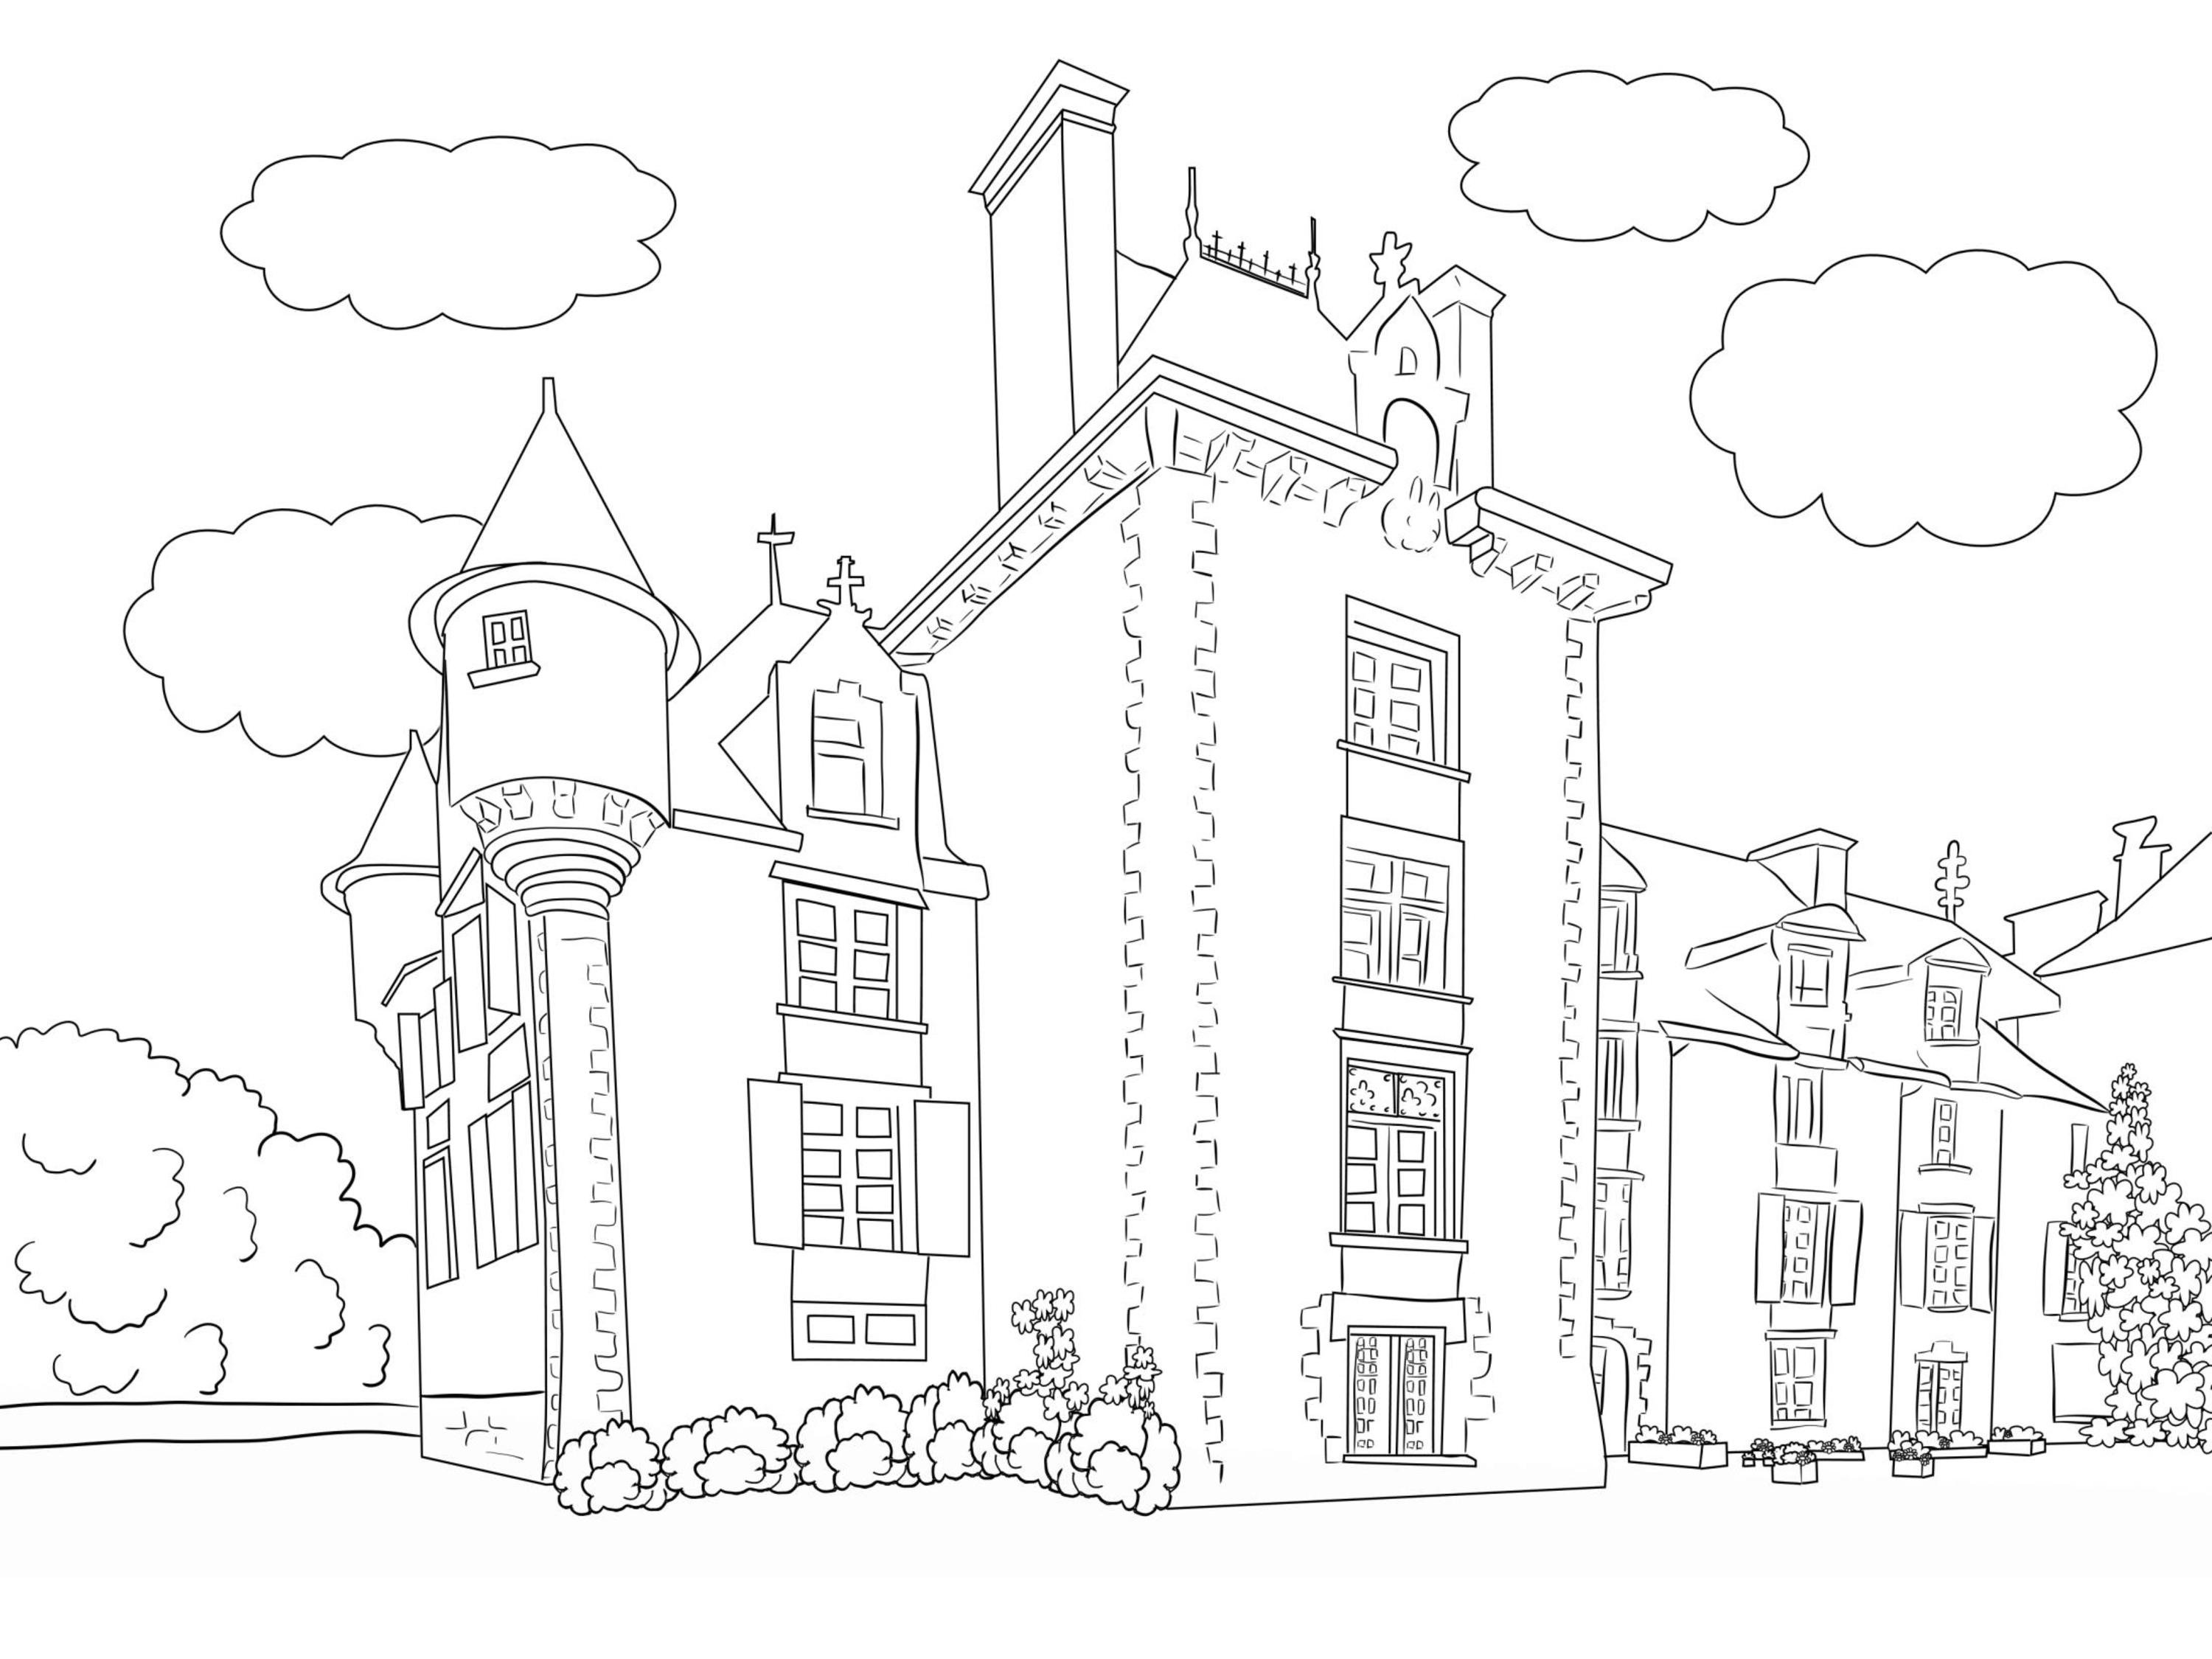 coloring scenery for kids scenery drawing step by step at getdrawings free download for coloring kids scenery